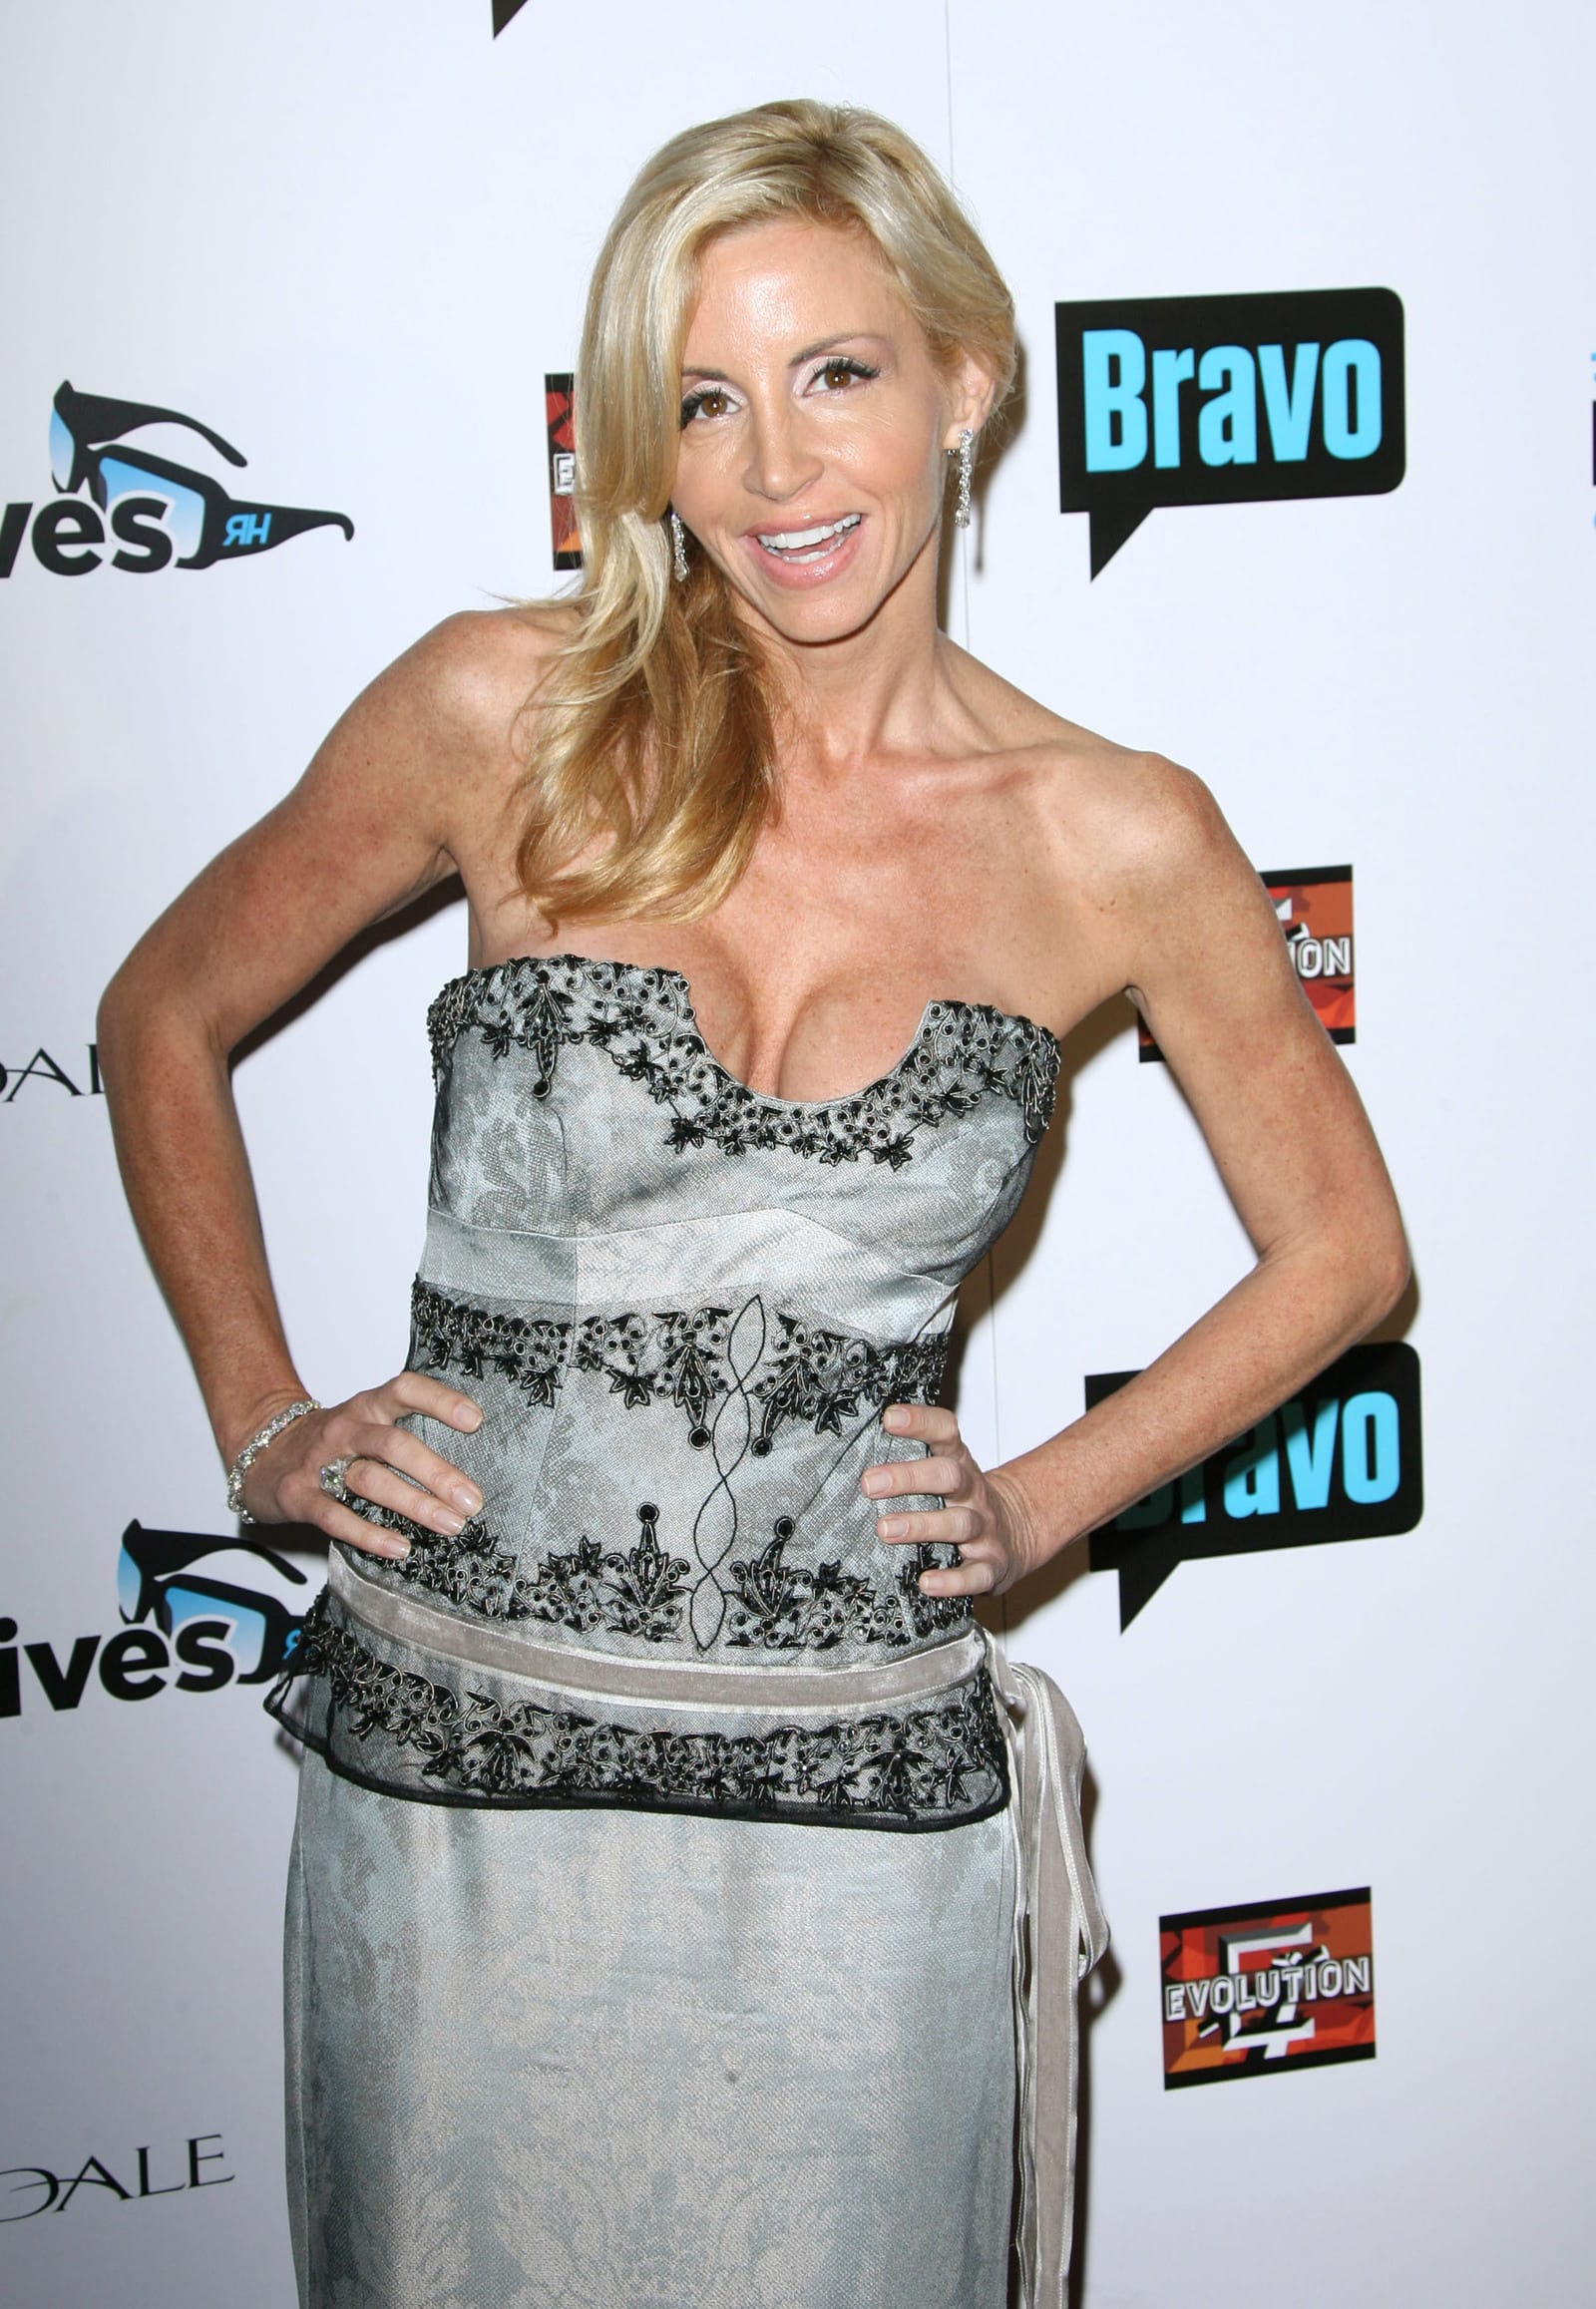 Camille grammer nude reality tv that can